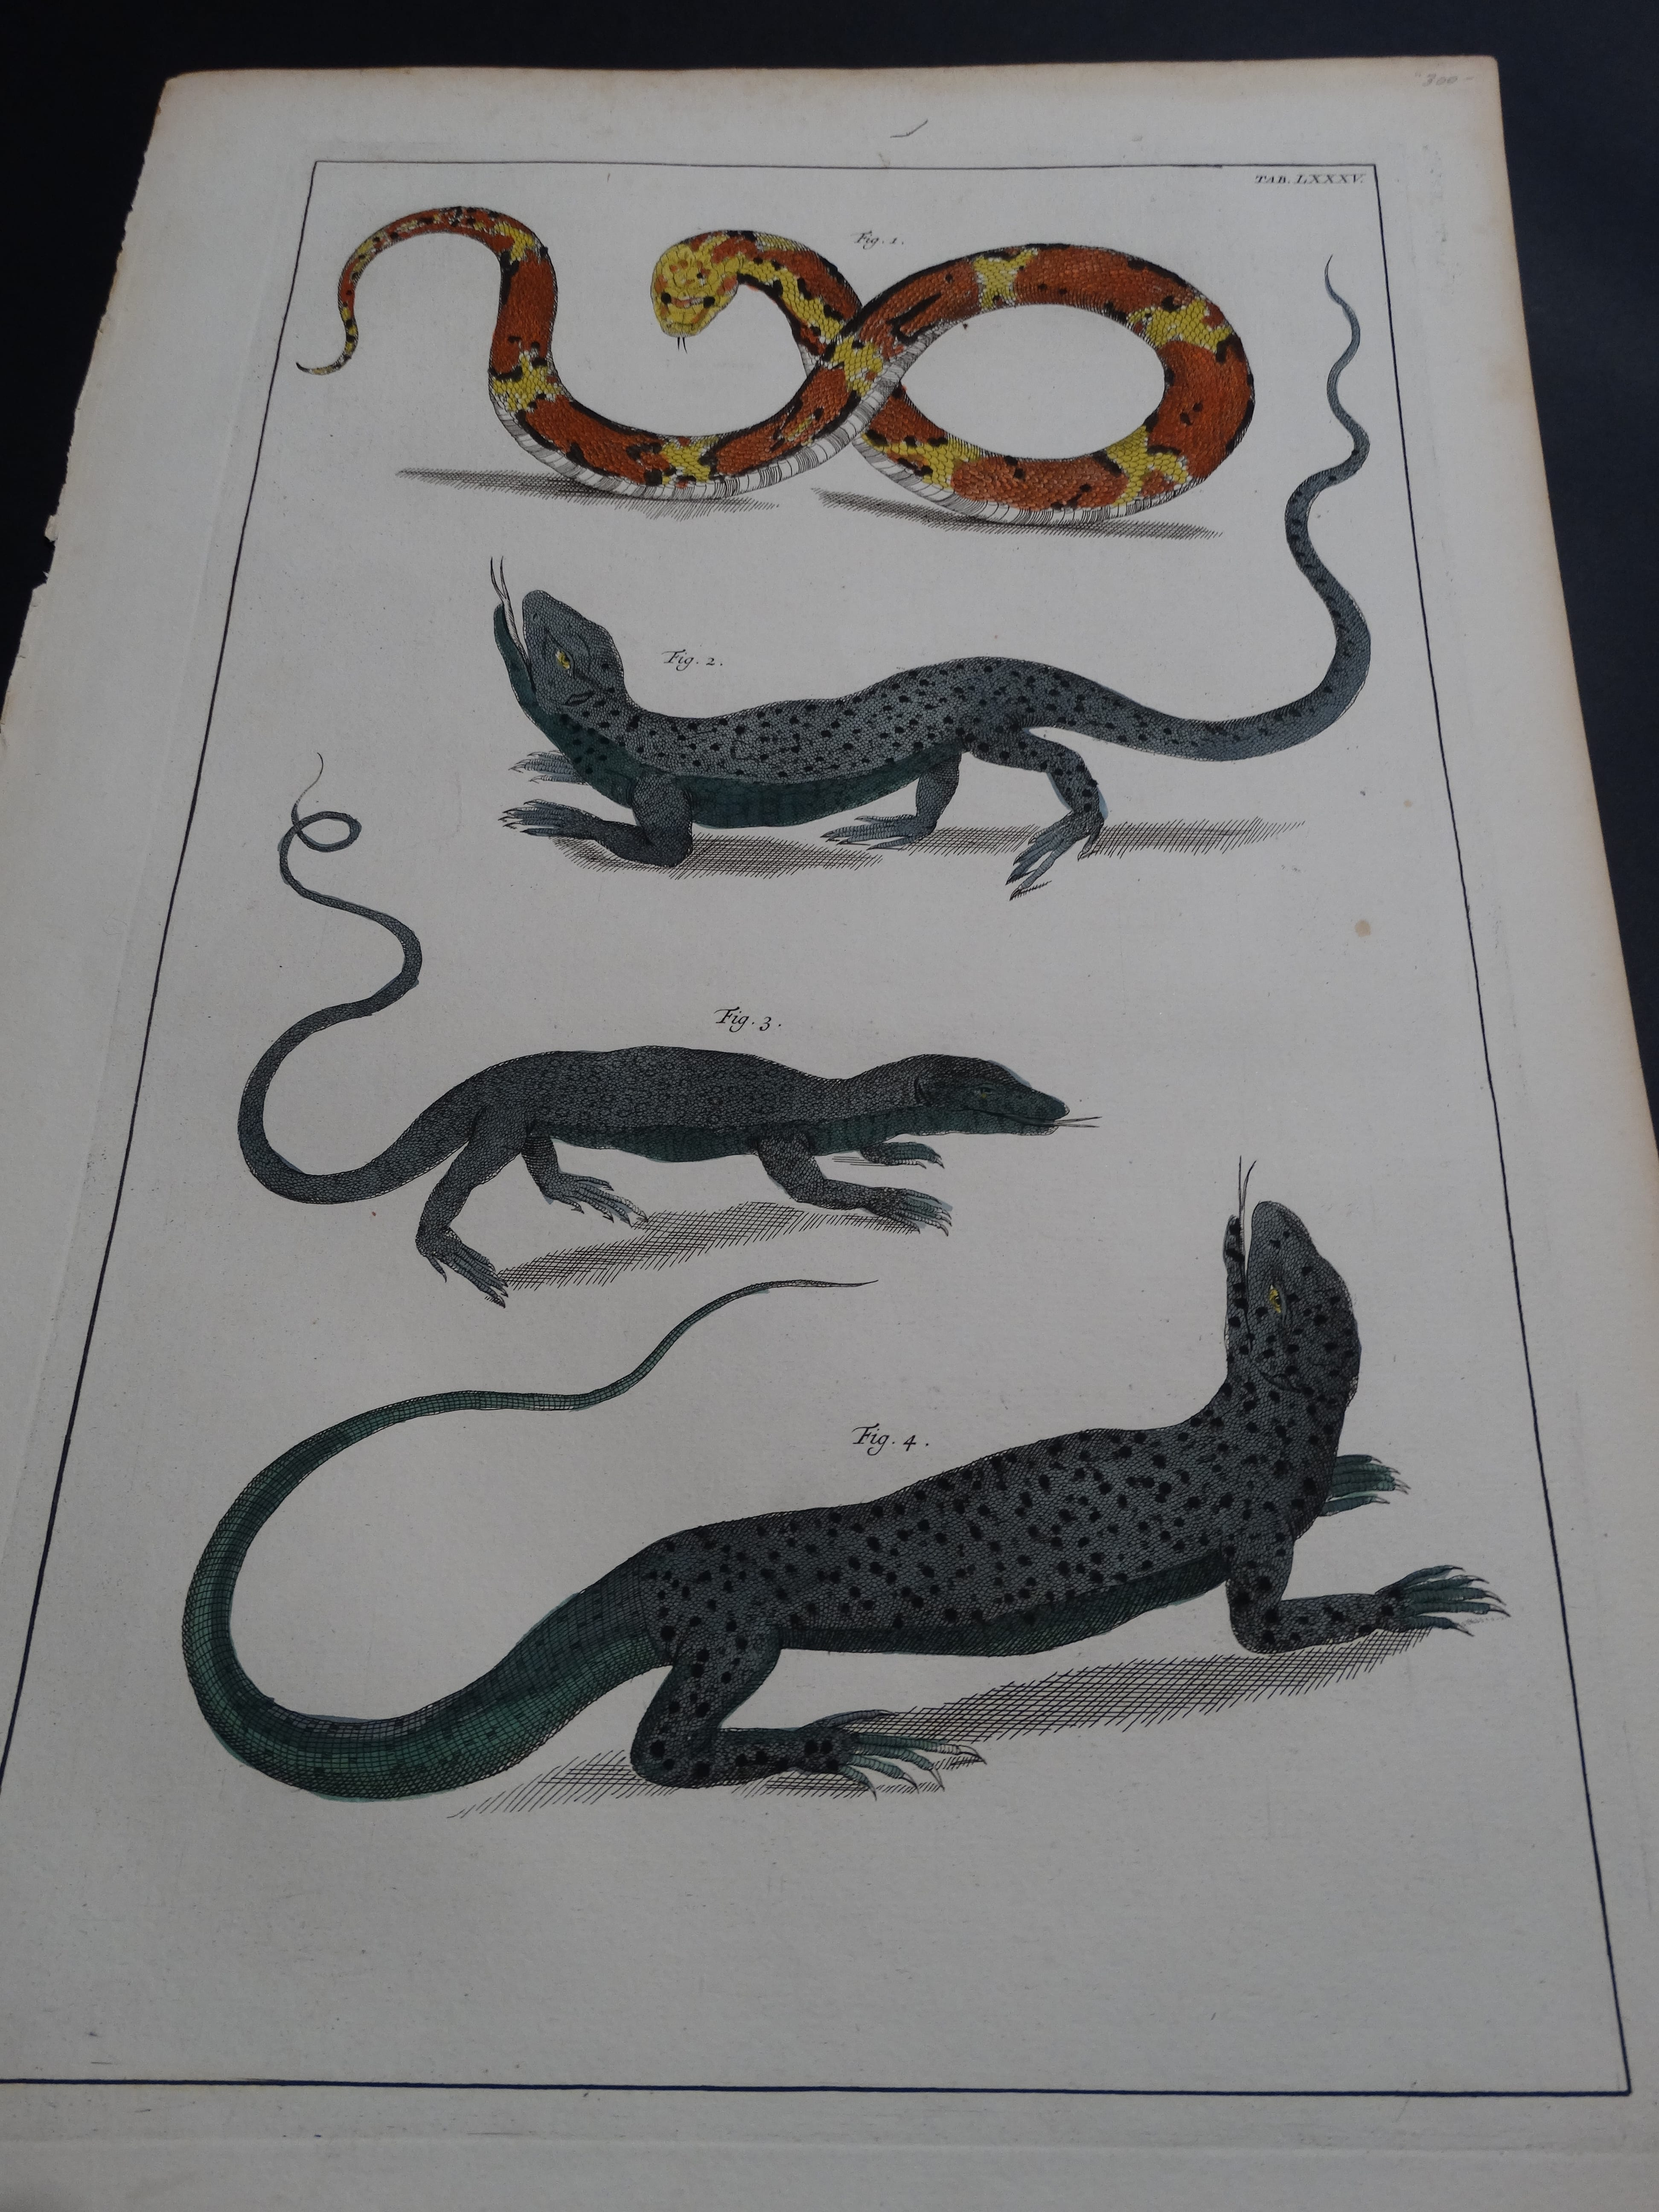 Albertus Seba Lizards and Snakes Pl. LXXXV